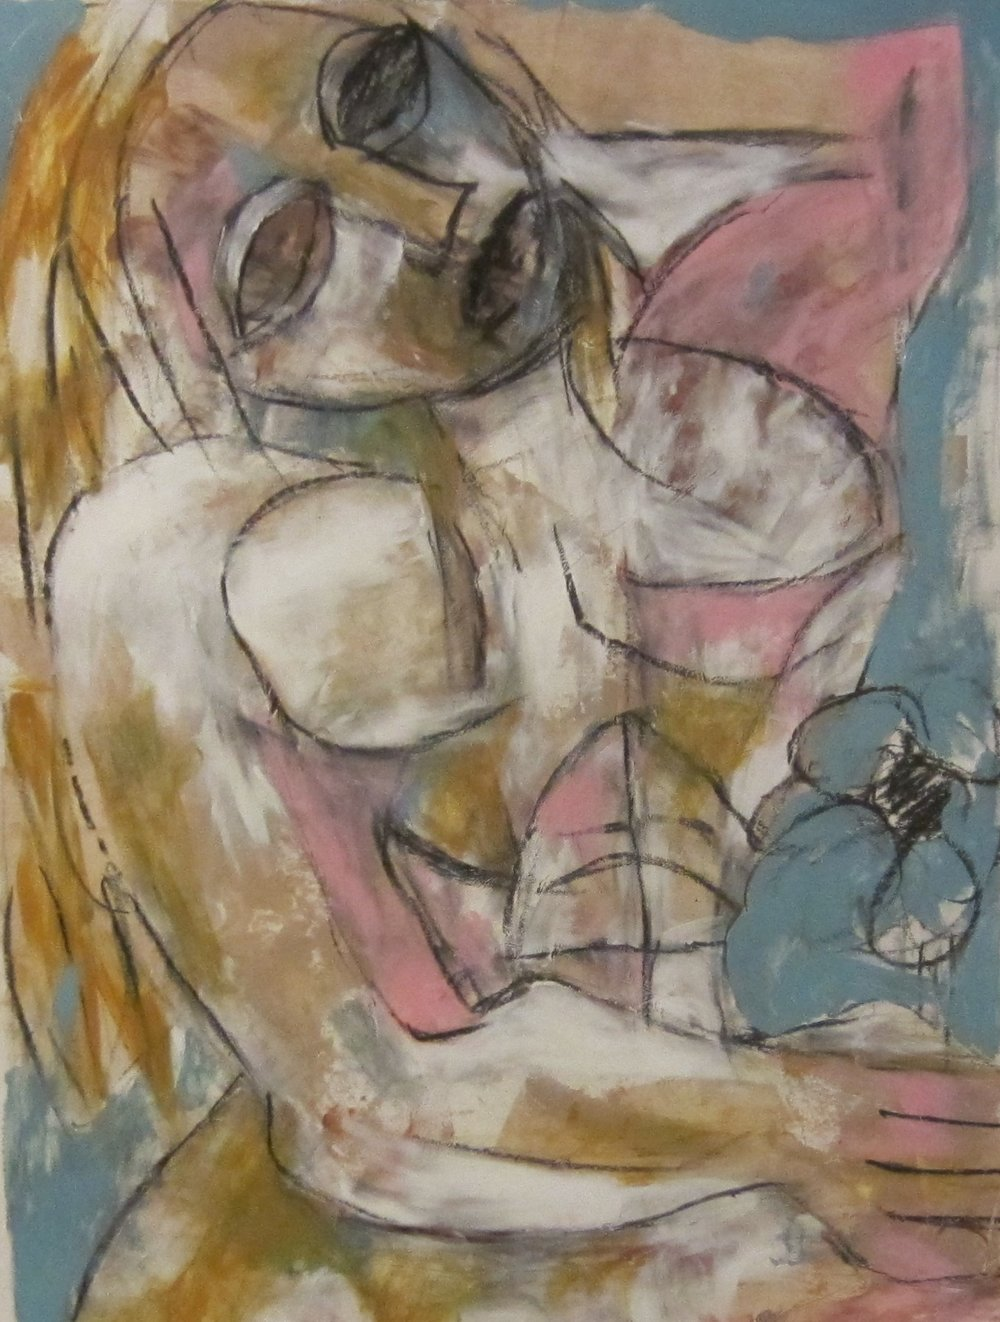 Orna with Flower 51 x 41 cm